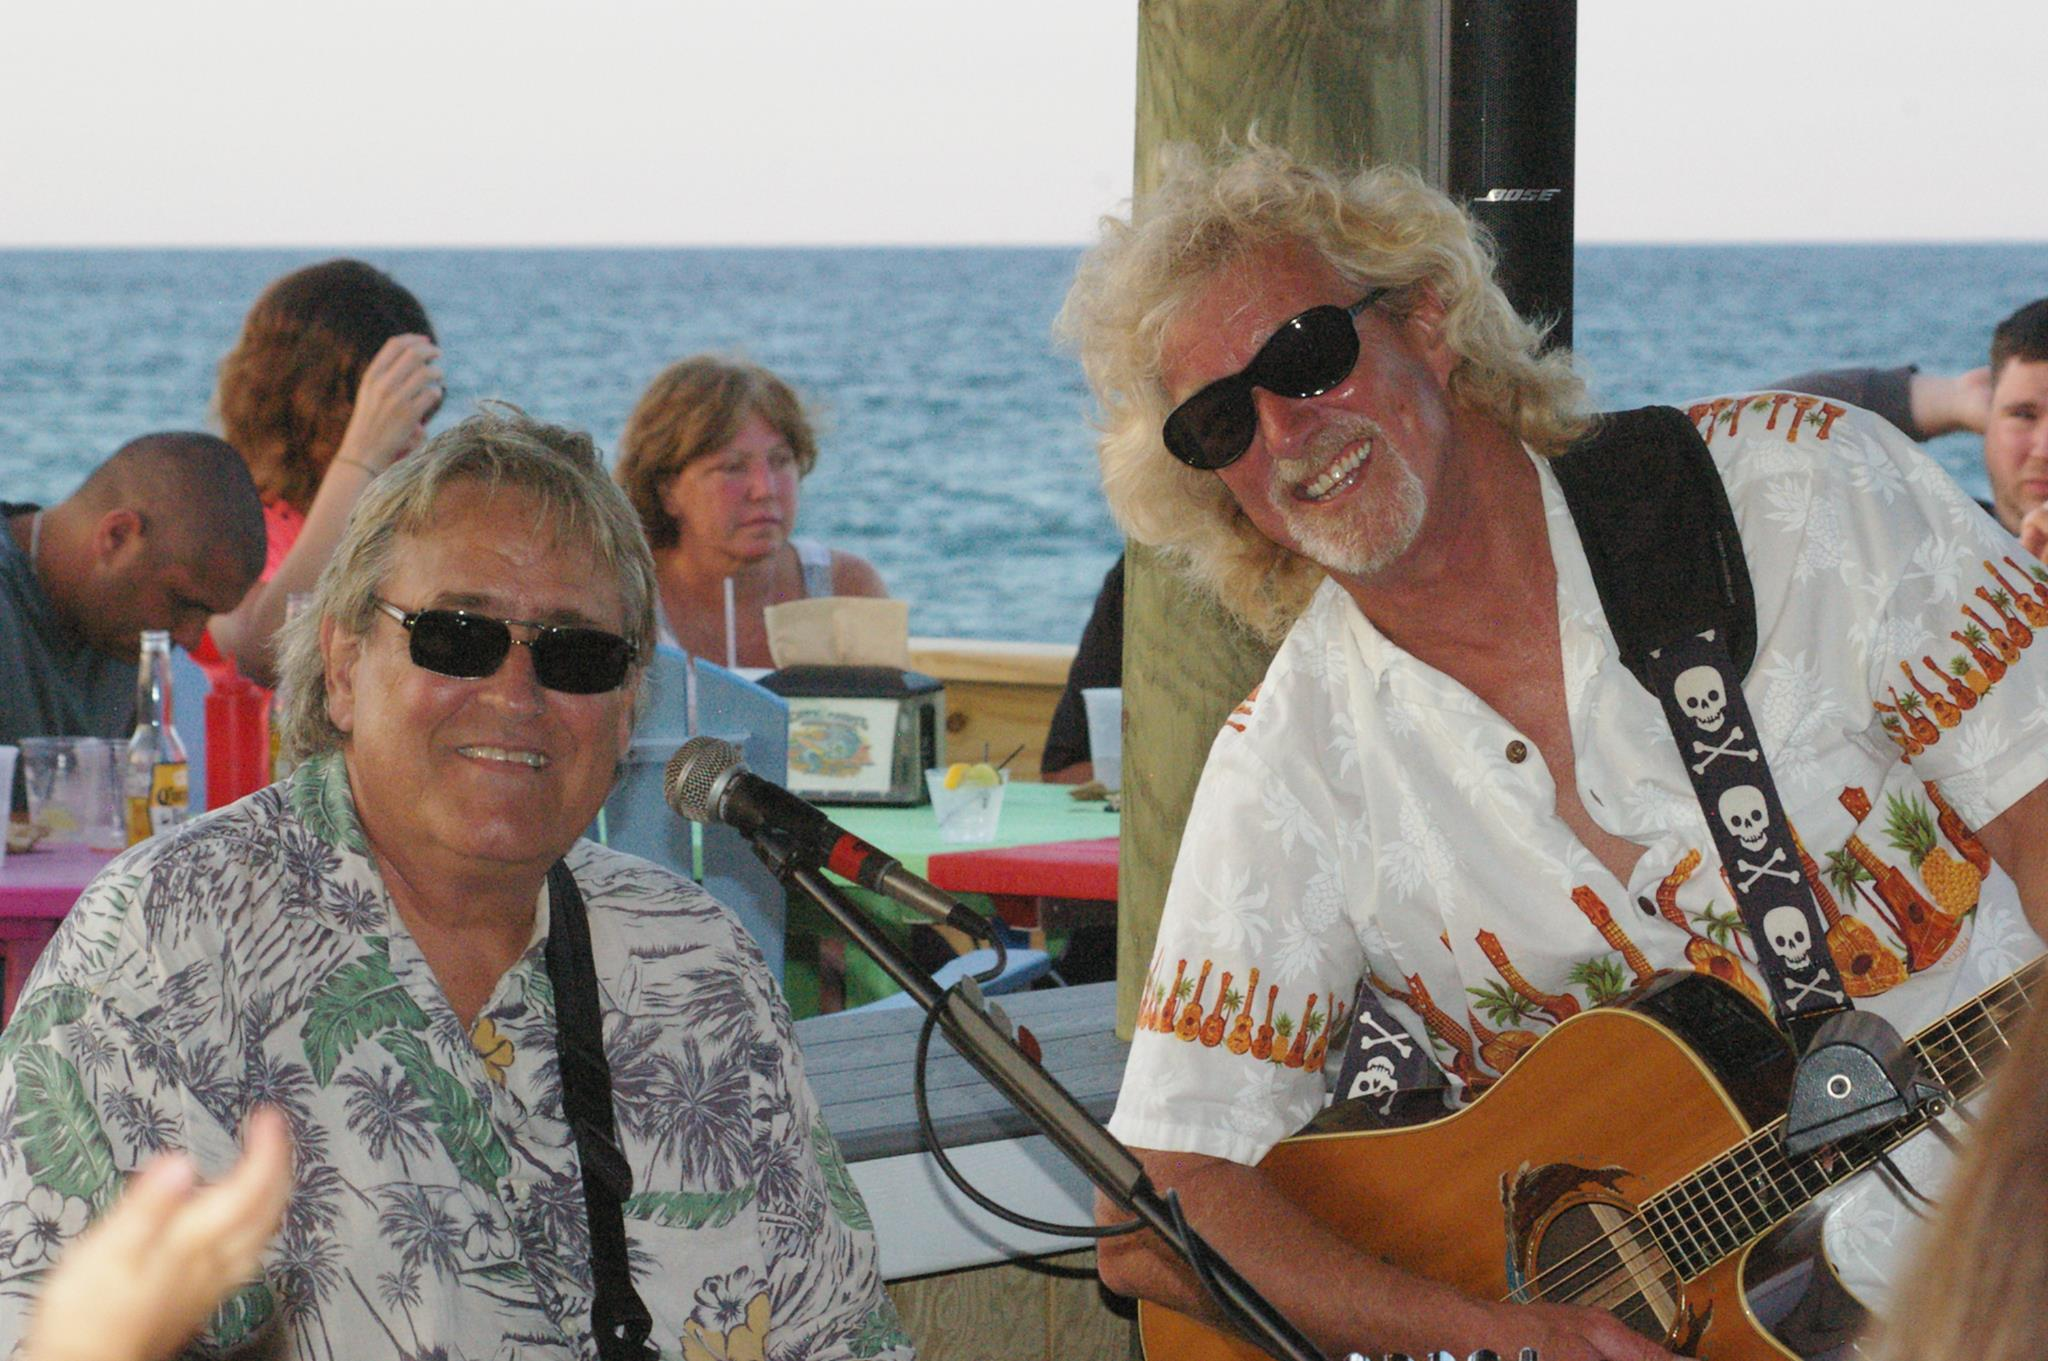 GREG SHELTON BAND LIVE MUSIC OUTER BANKS